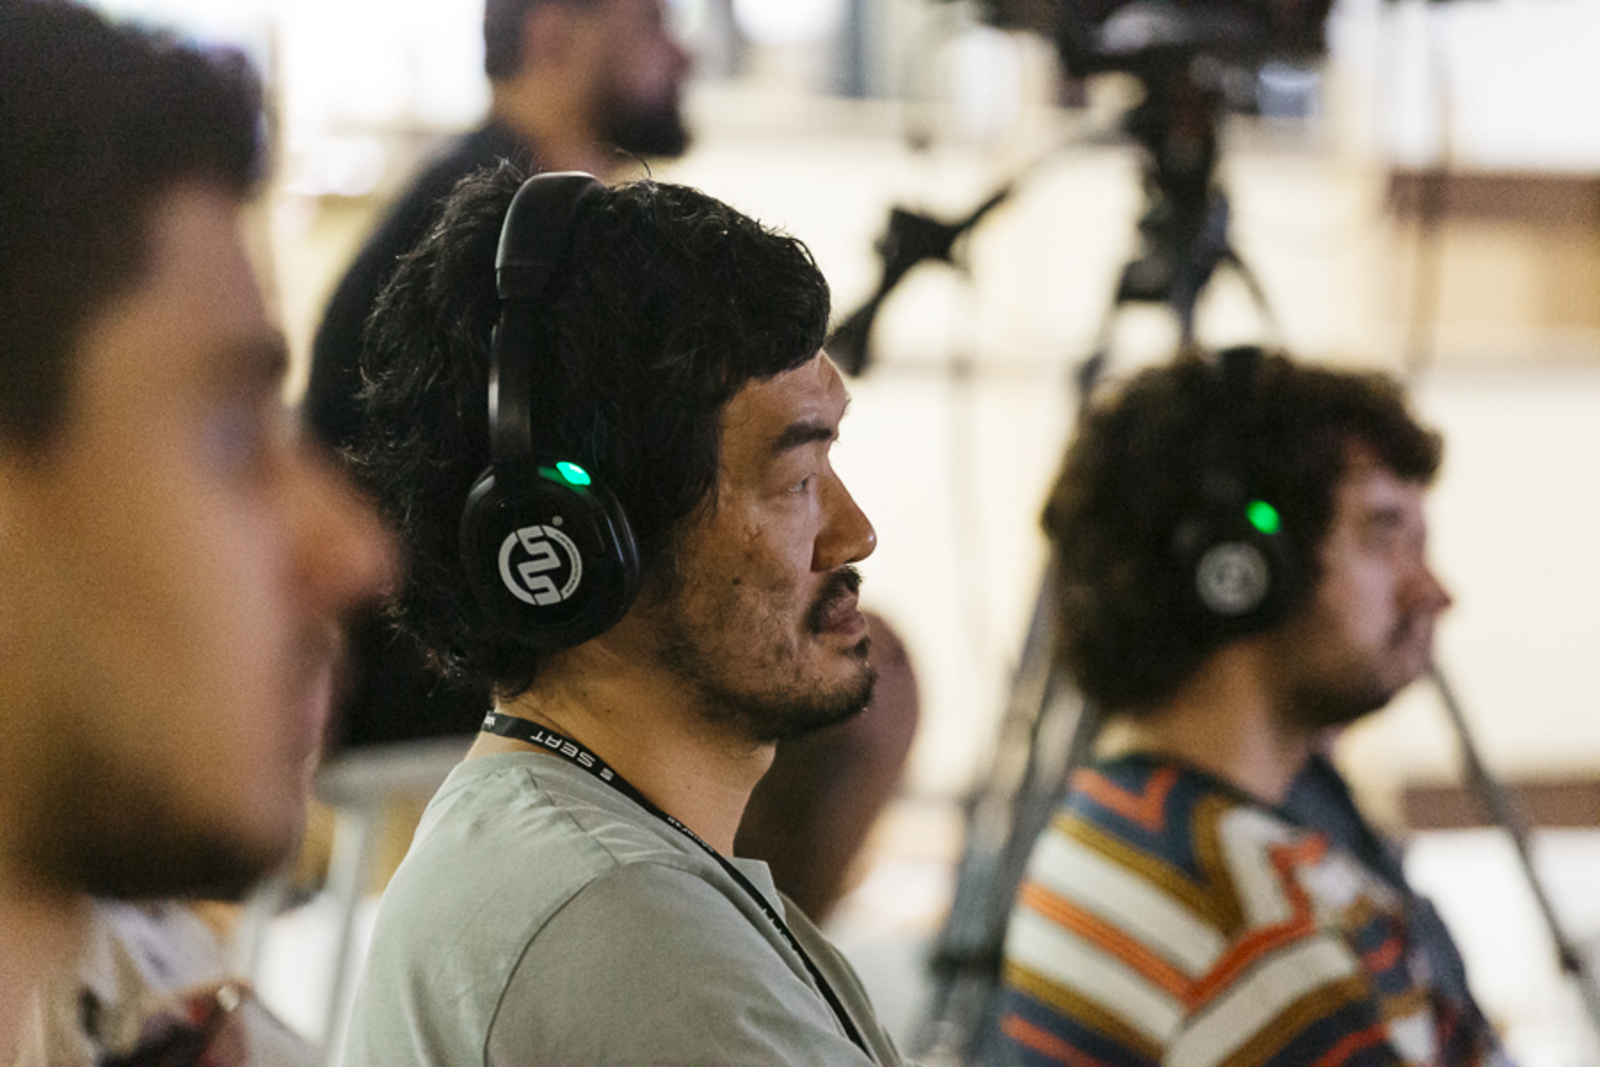 Concentration at Sónar+D